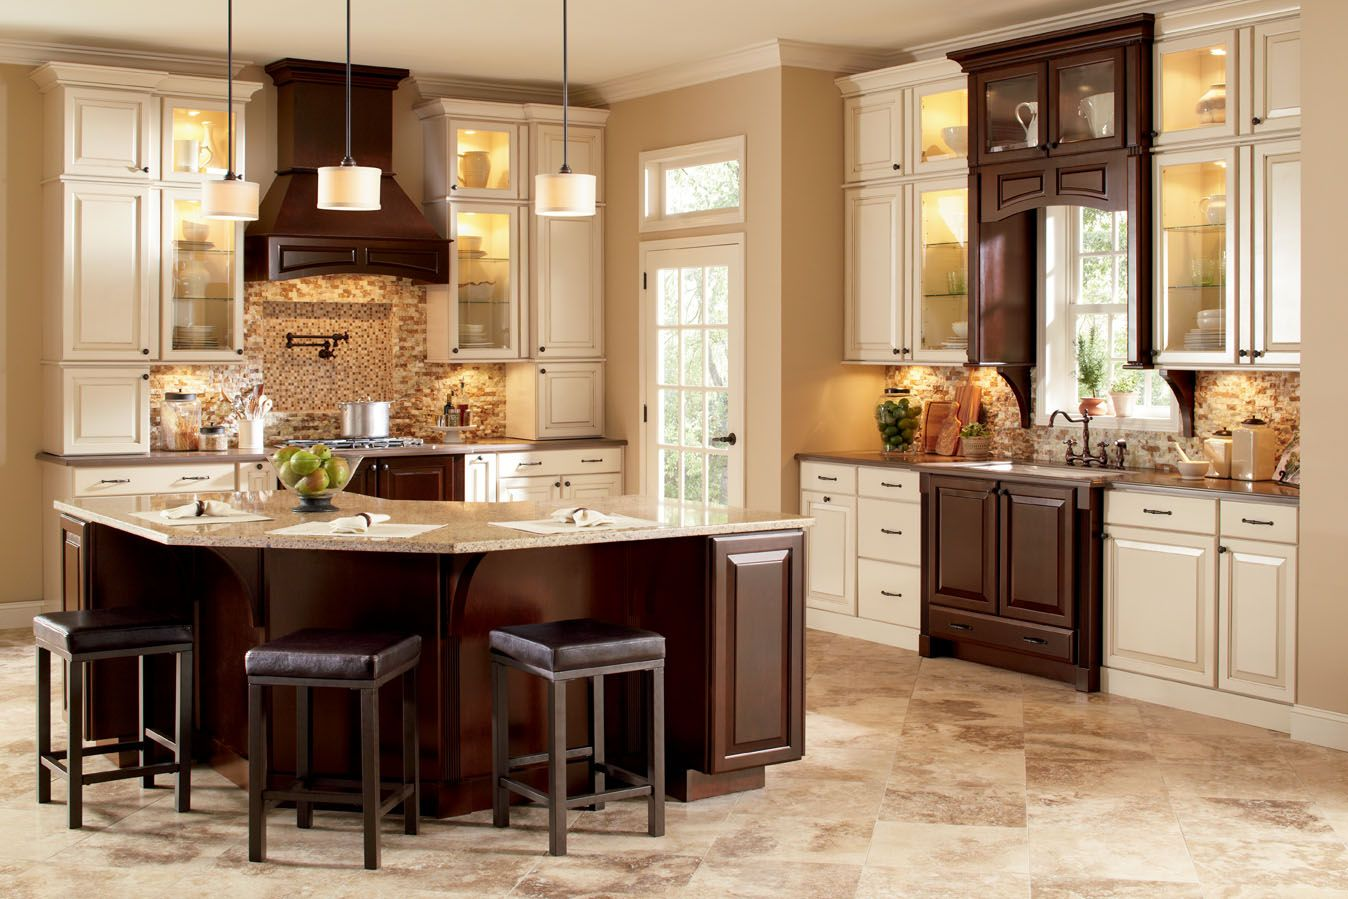 Review on american kitchen cabinets labels home and for Kitchen cabinets with